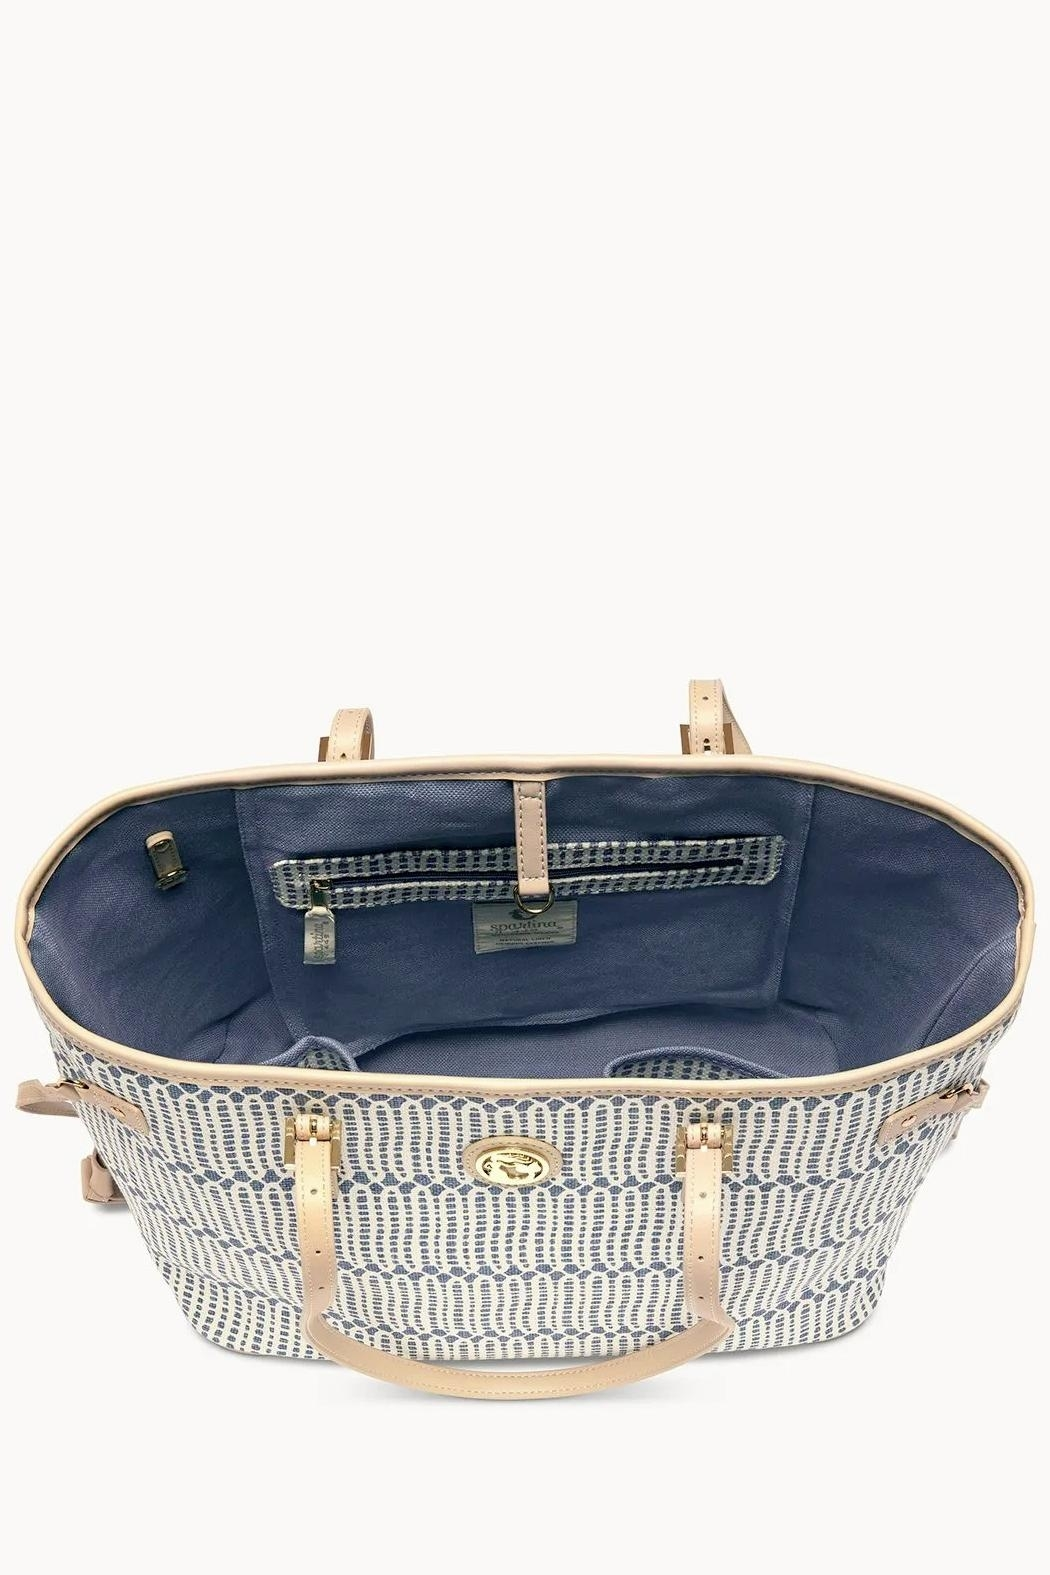 Spartina 449 Songbird Jetsetter Tote - Front Full Image